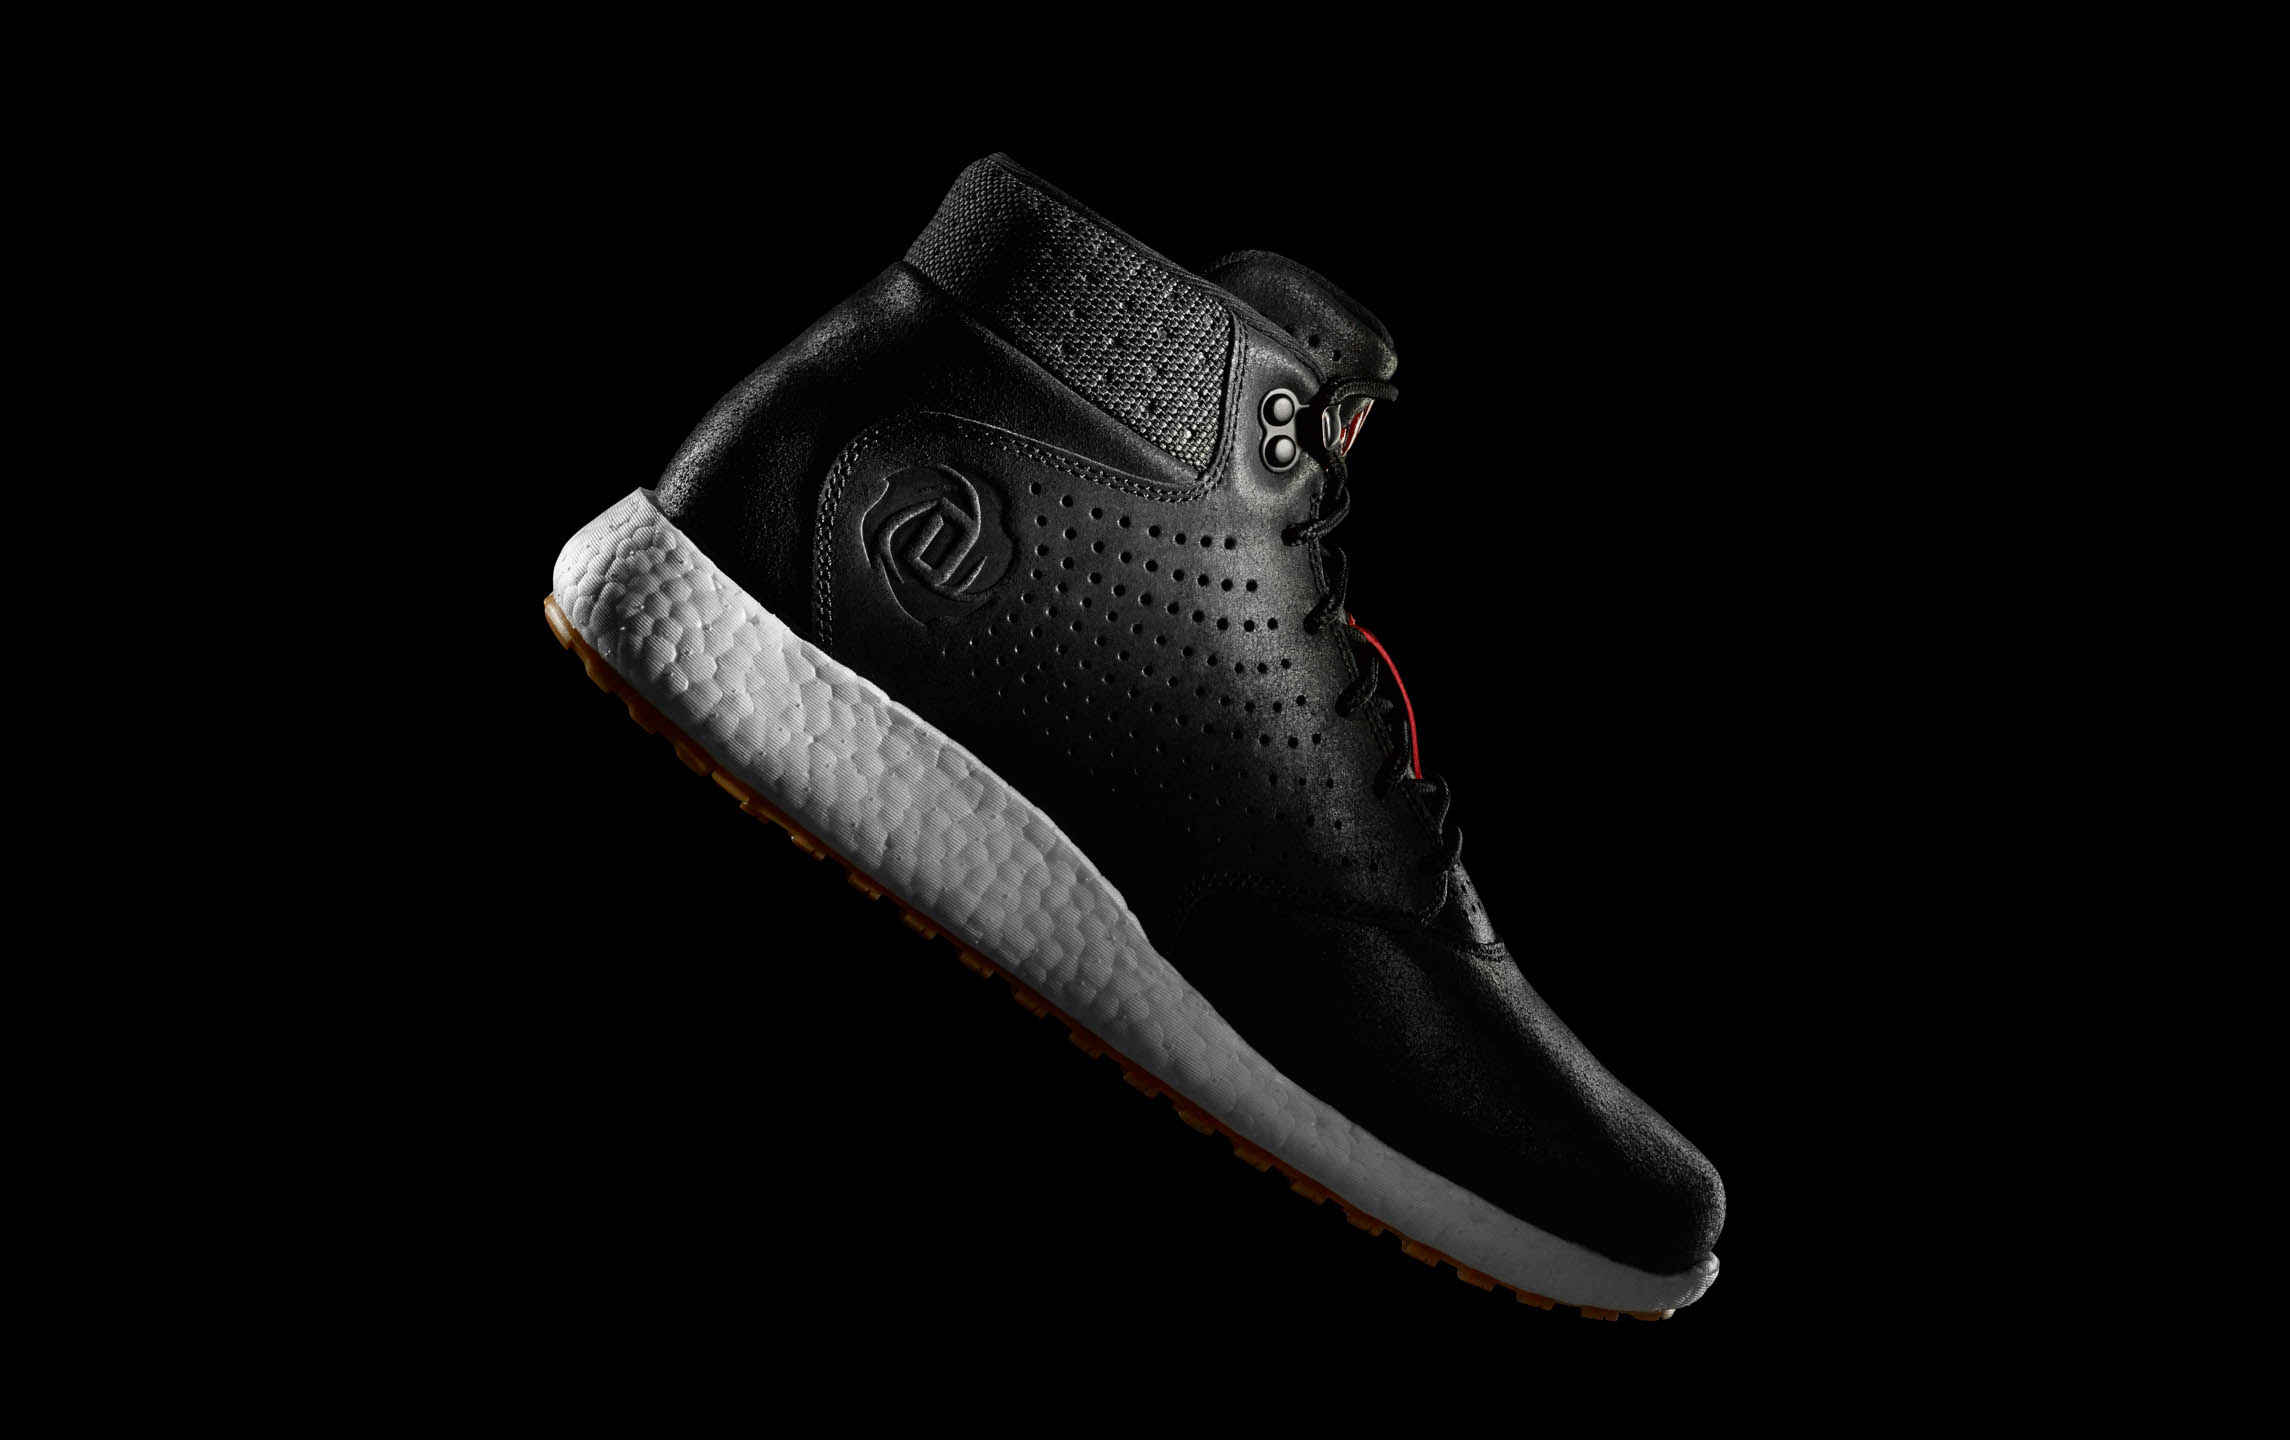 Adidas Derrick Rose basketball footwear by Steve Temple Photography